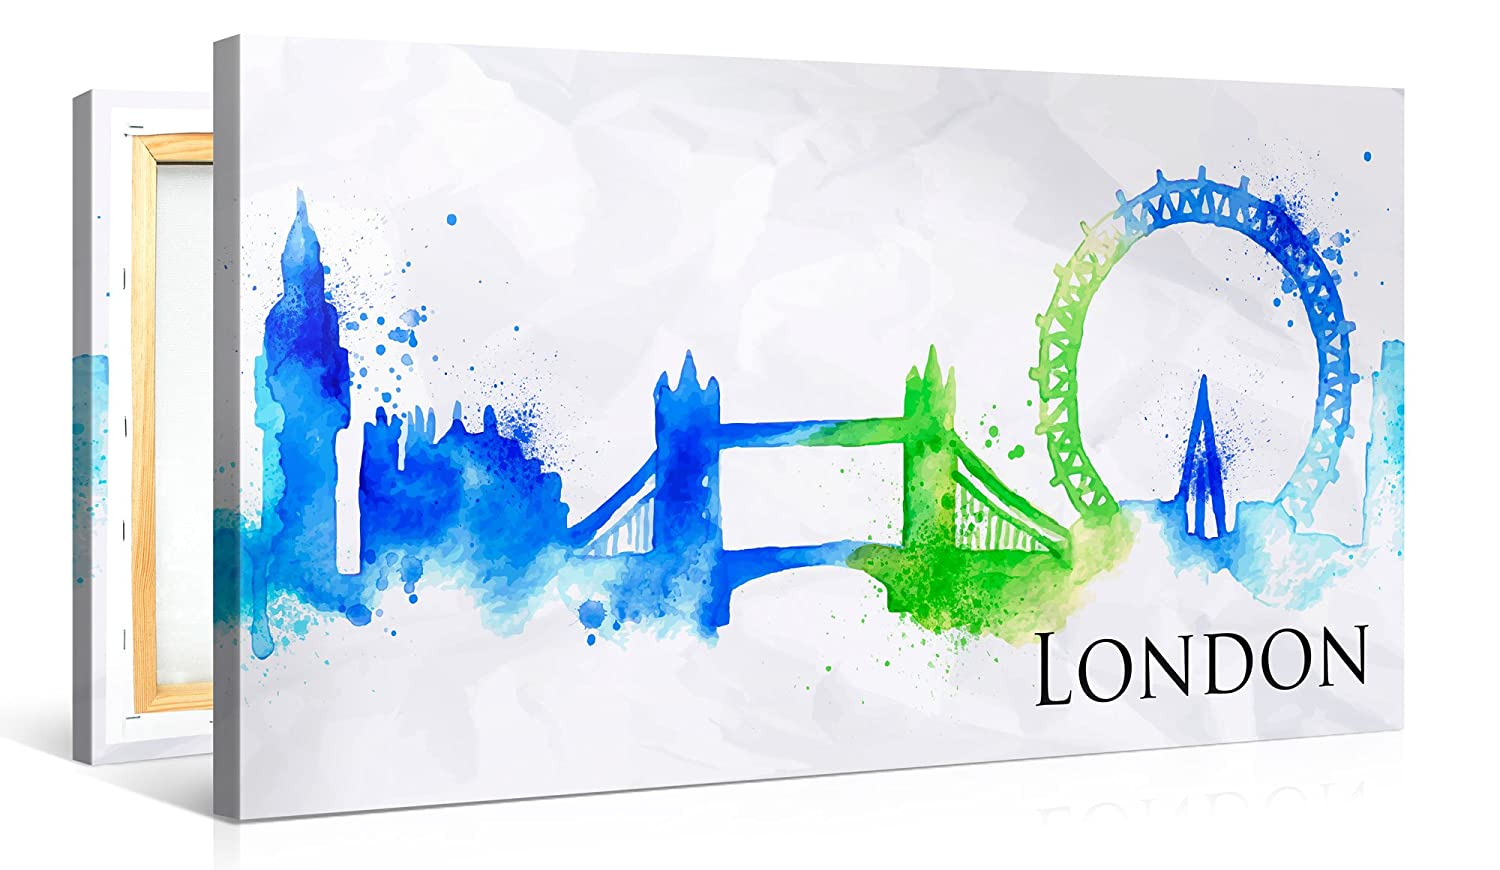 Amazon.de: Premium Leinwanddruck 100x50 cm - London - XXL Kunstdruck ...